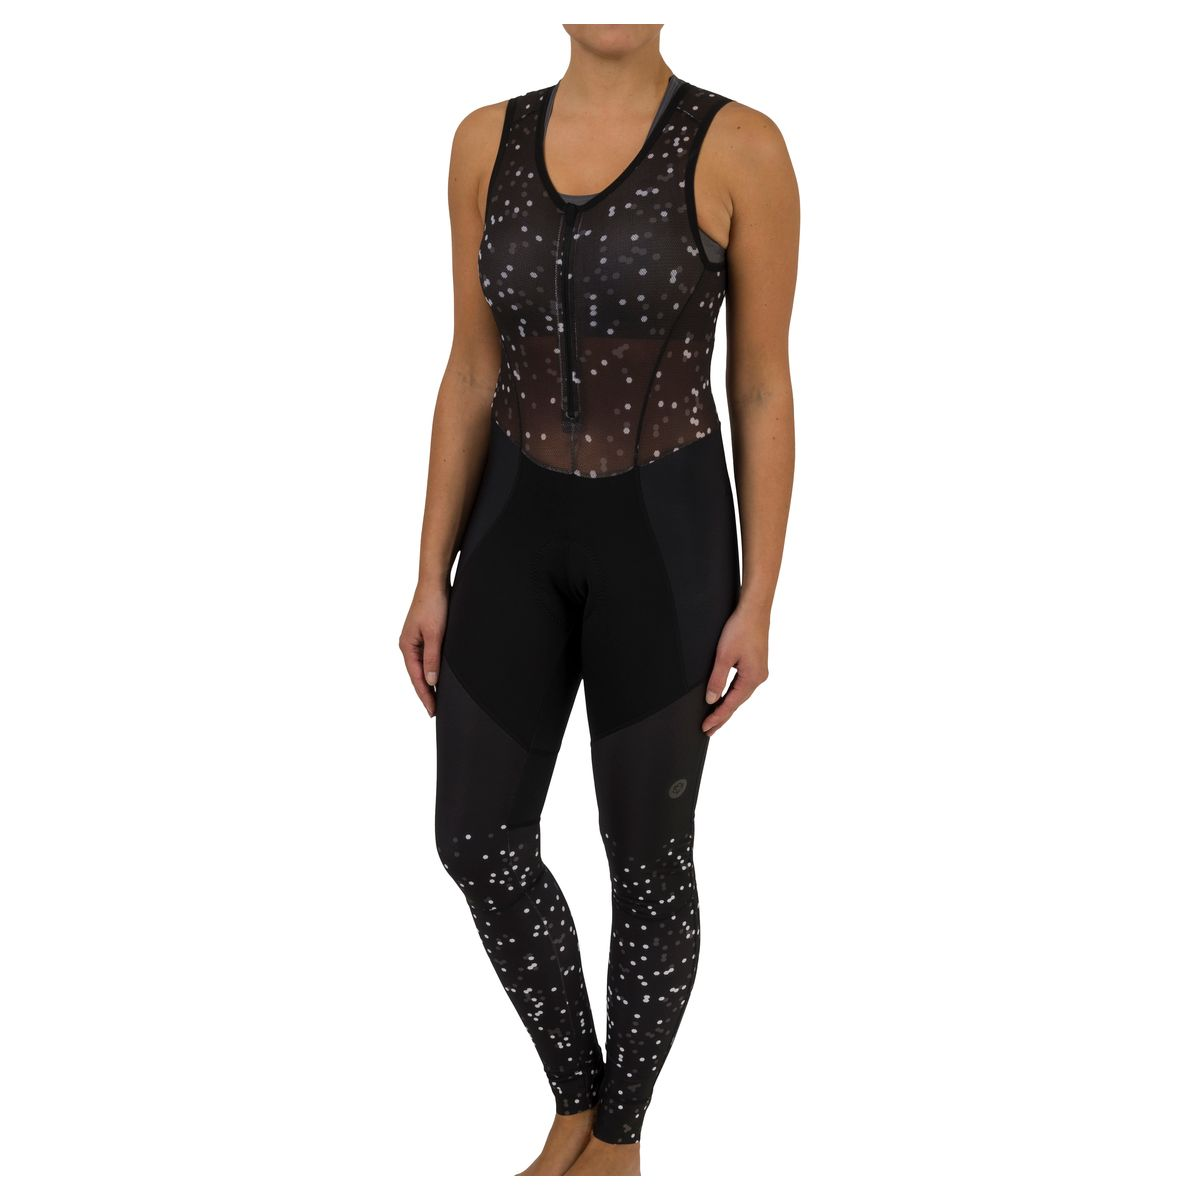 Fiesta Prime Bibtight Trend Dames fit example